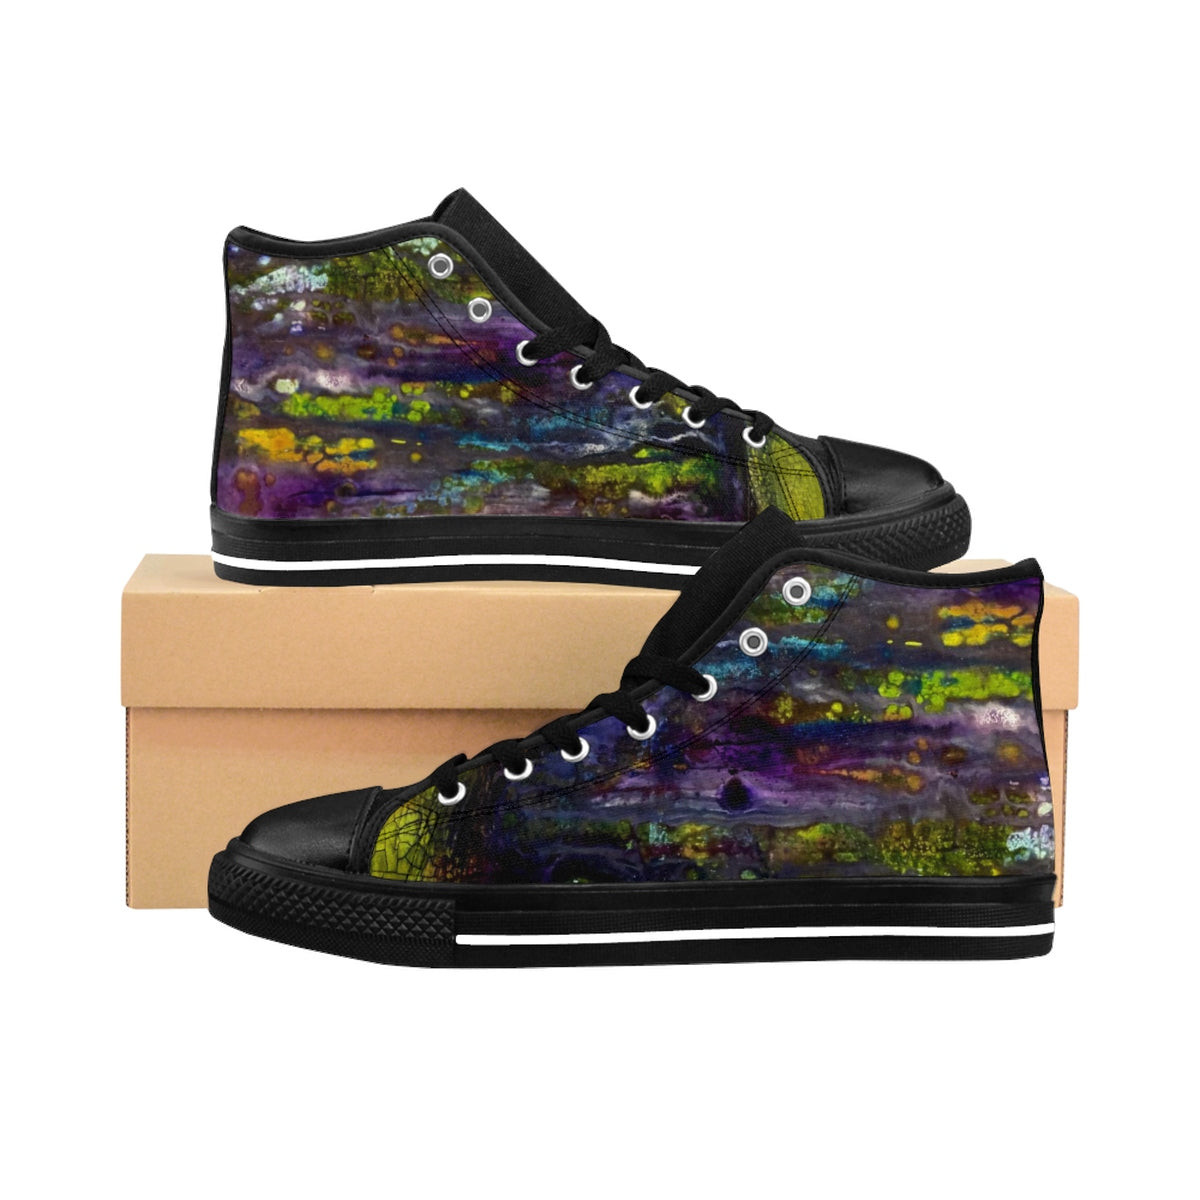 Entrance to Fairy Forest Women's High-Top Sneakers